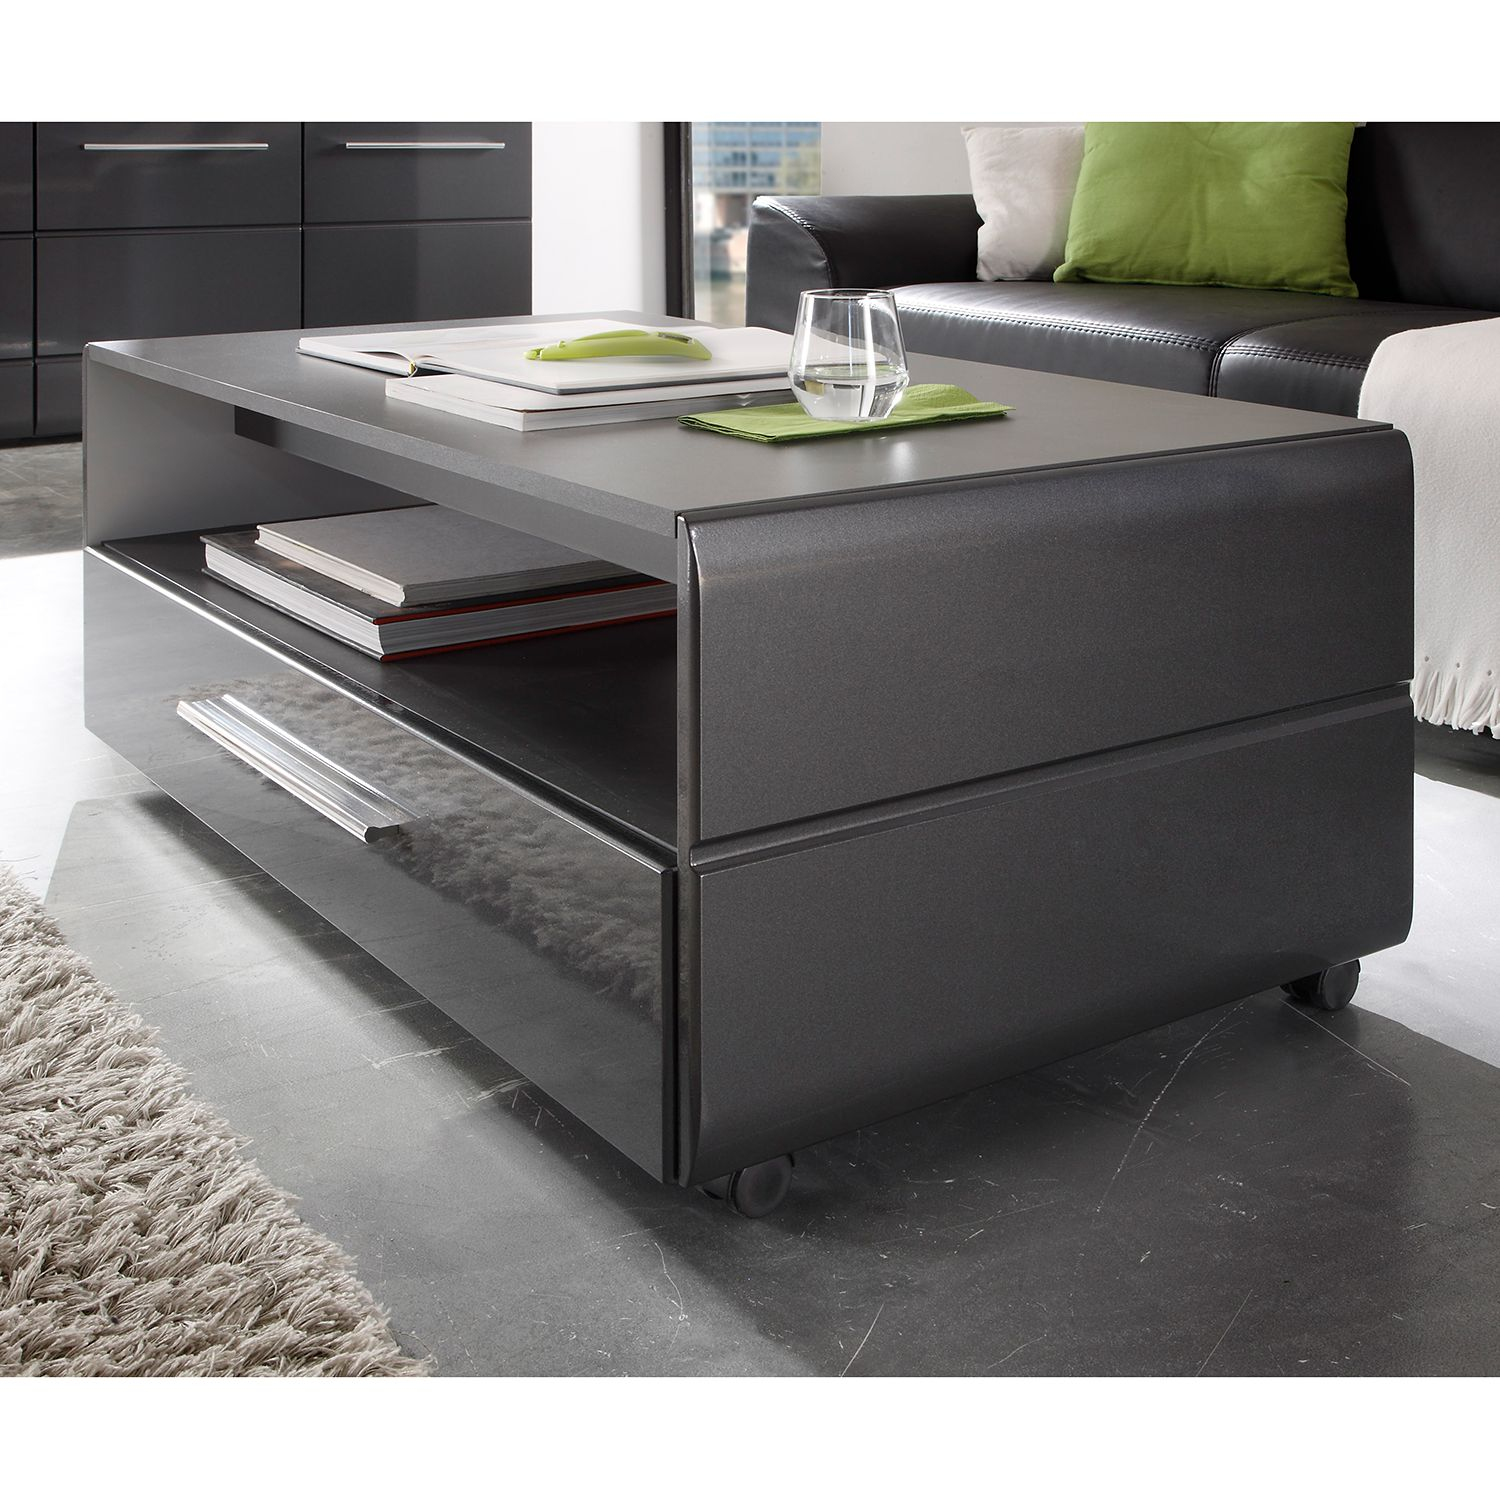 couchtisch hochglanz grau energiemakeovernop. Black Bedroom Furniture Sets. Home Design Ideas